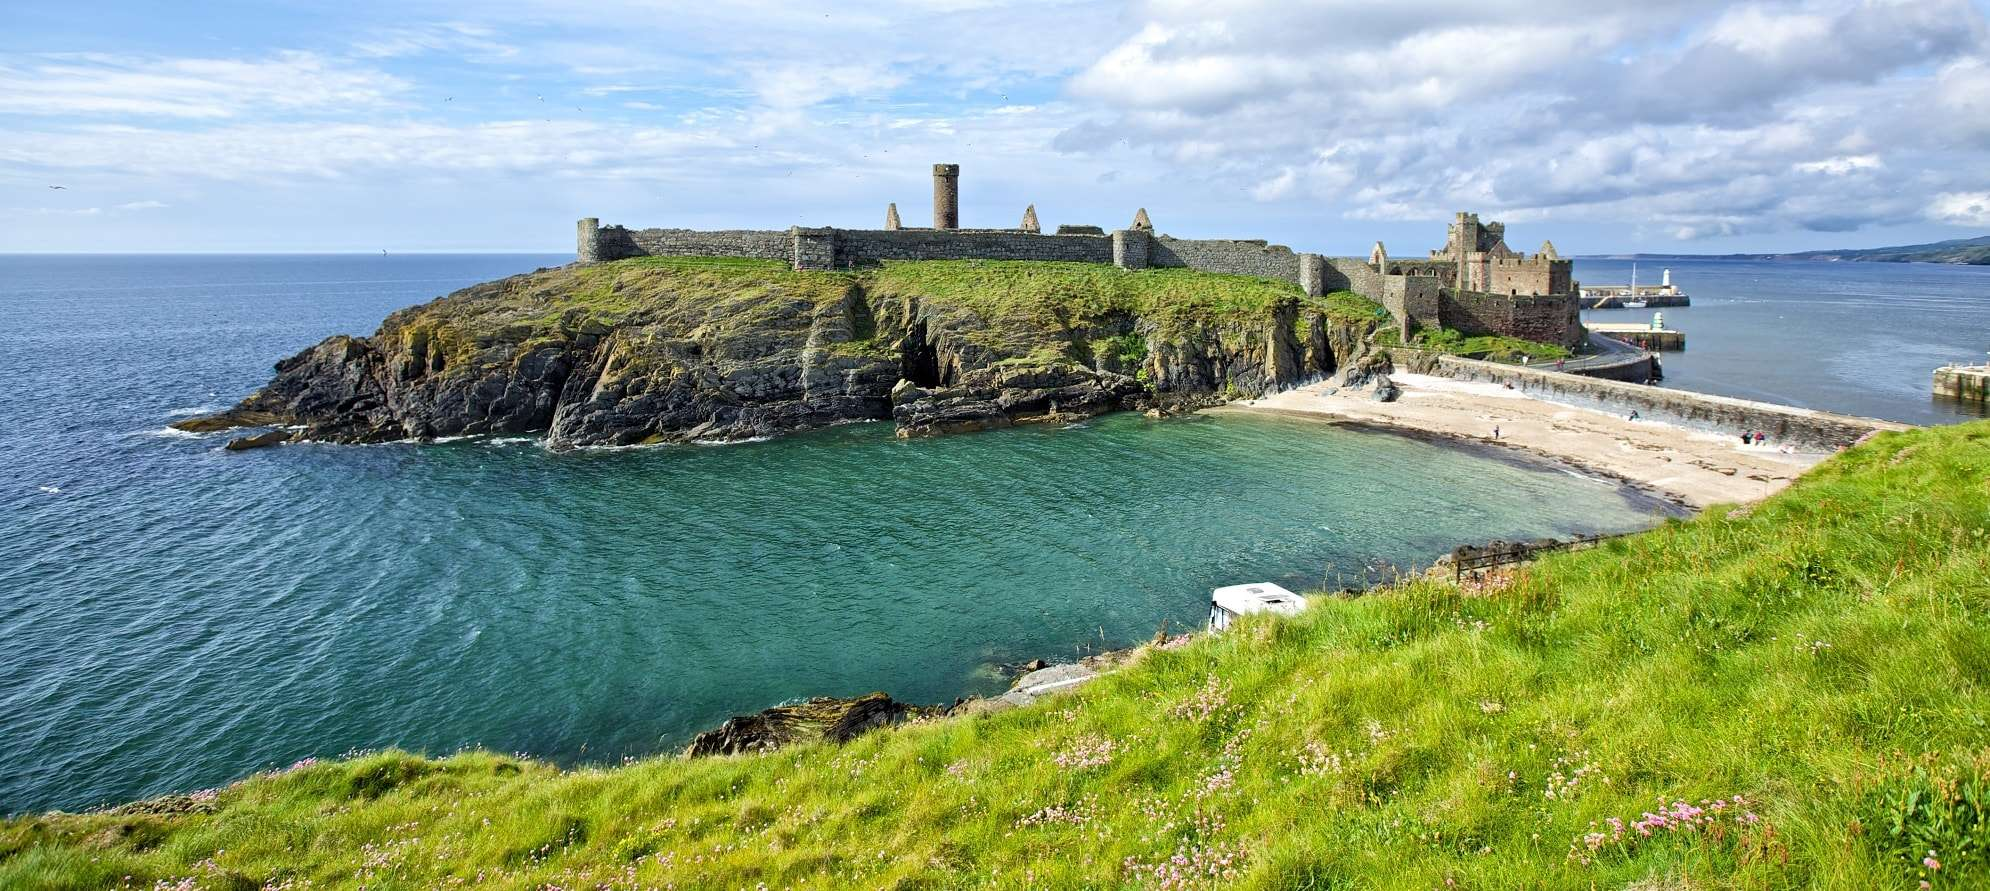 Peel Castle, connected to the town by causeway